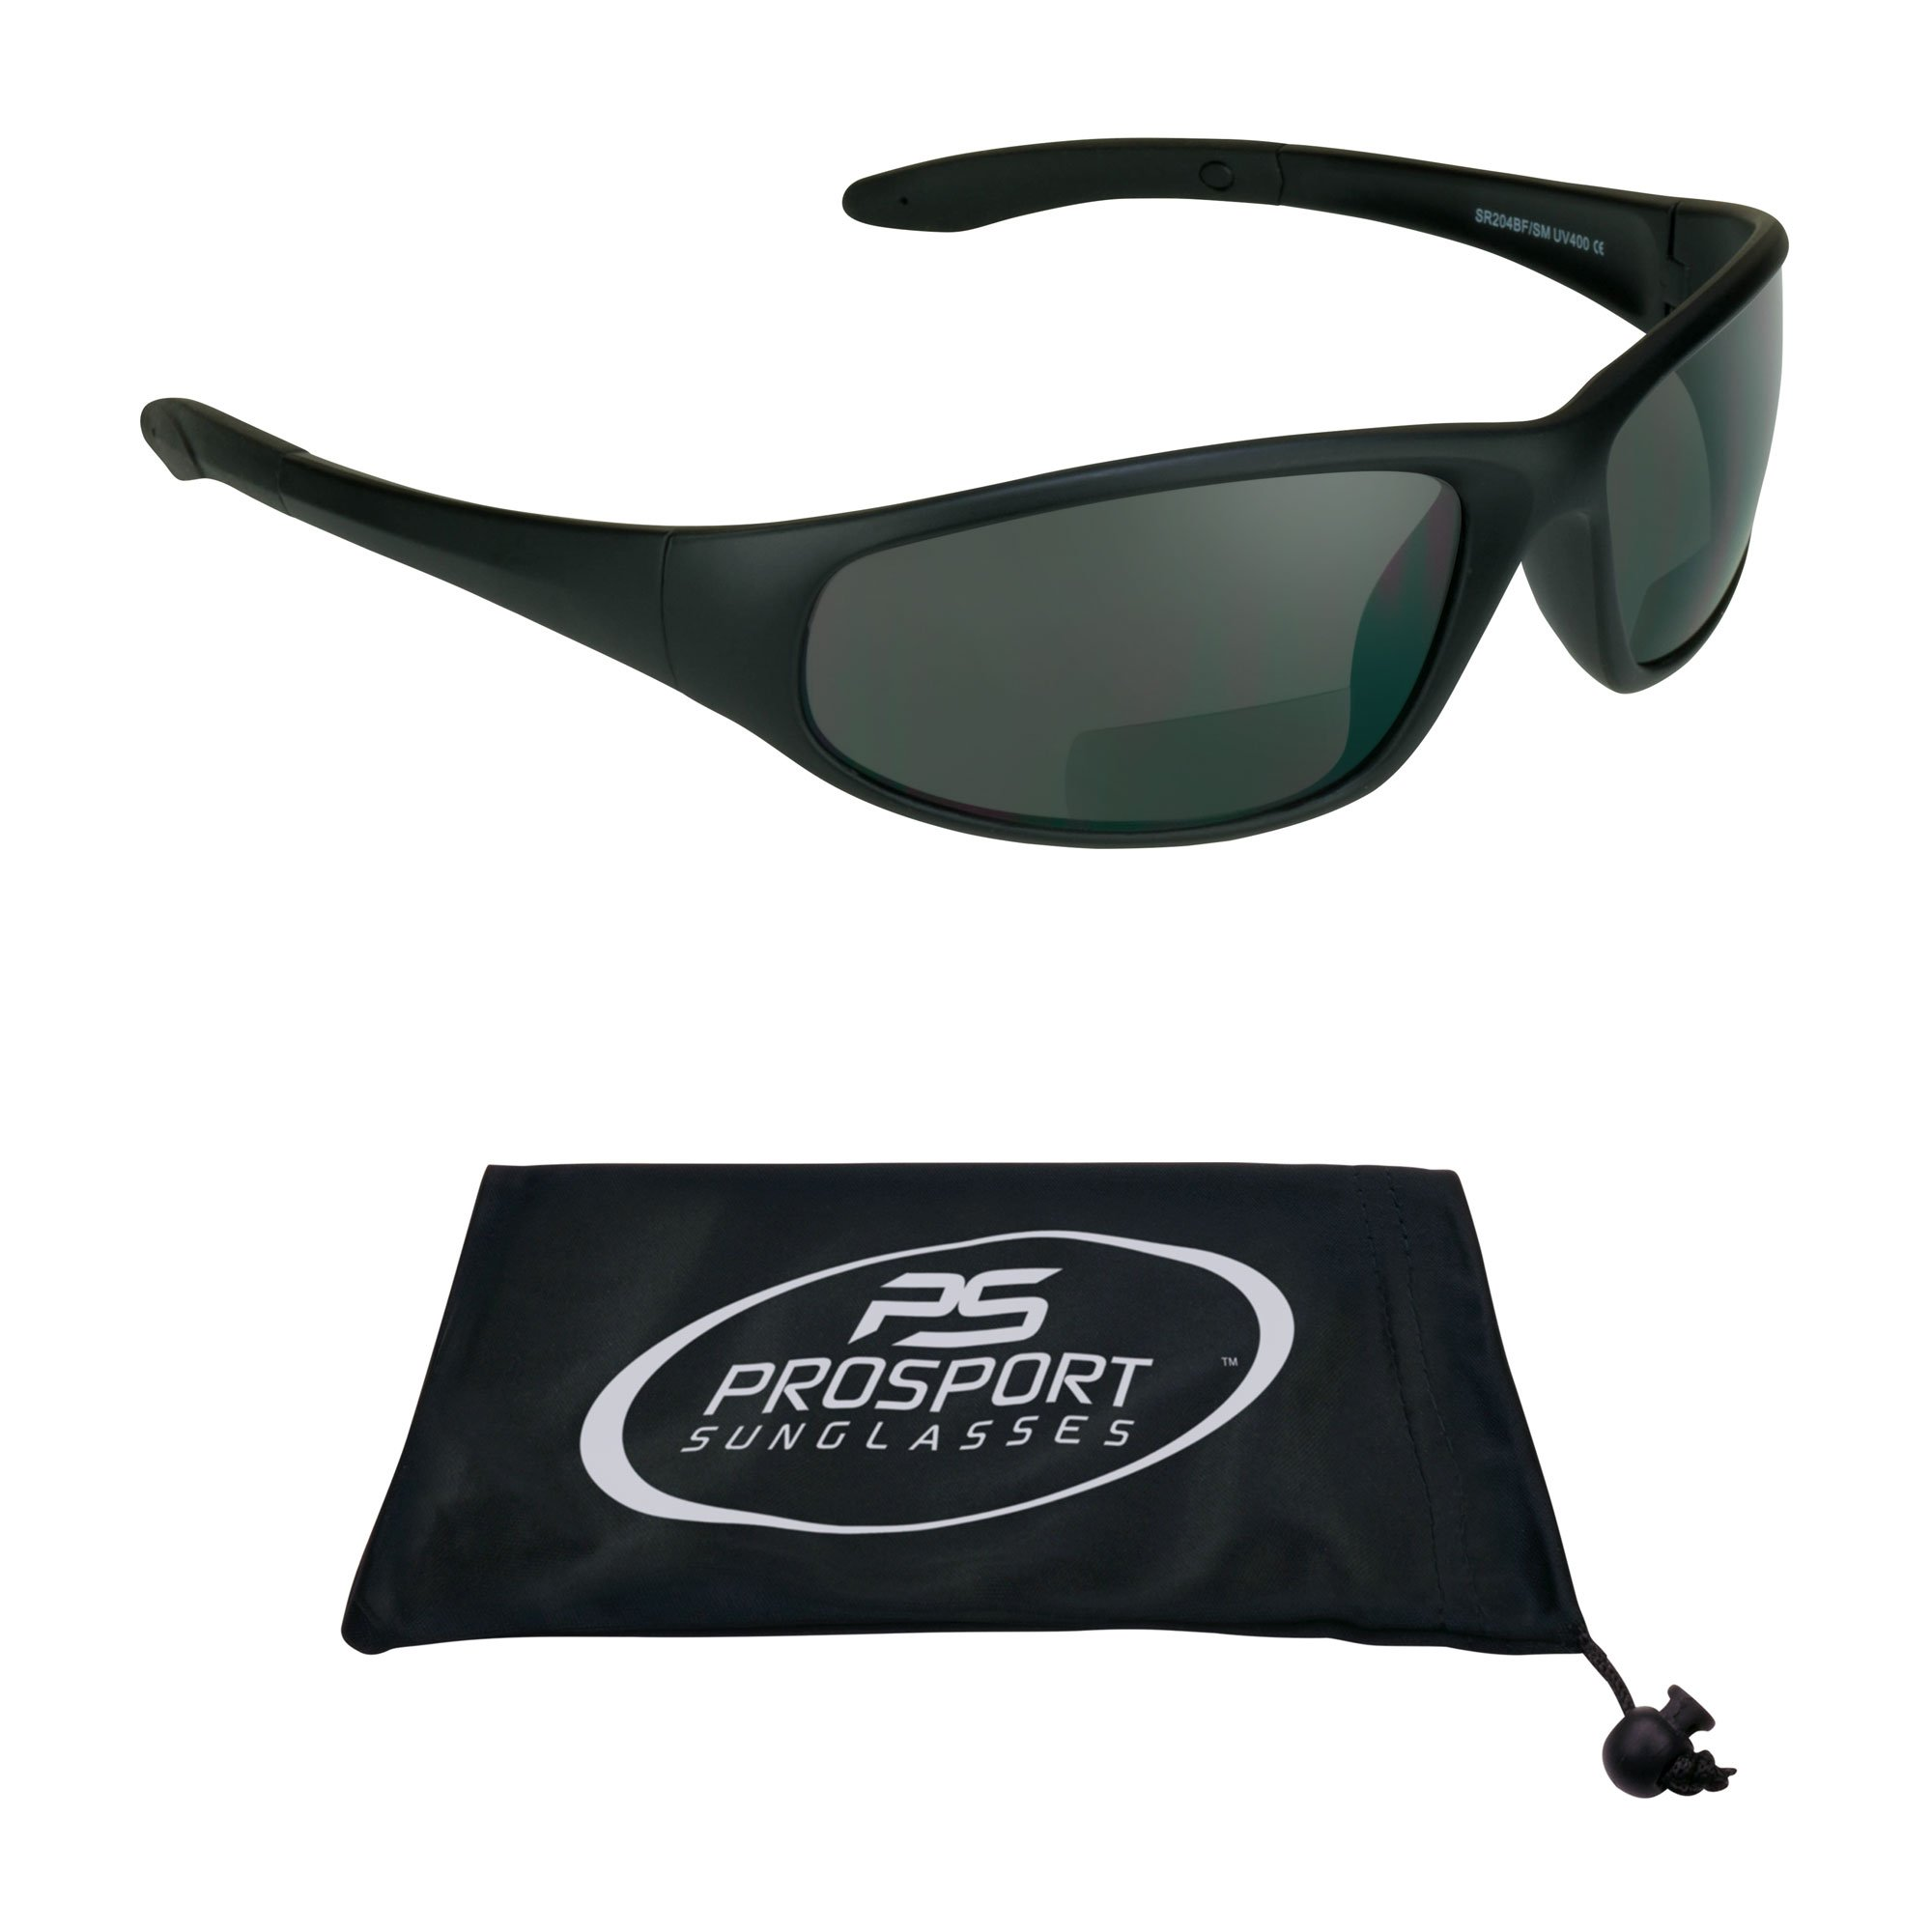 proSPORT Bifocal sunglasses with ANSI Z87 Polycarbonate Safety Smoke Lenses for Men and Women